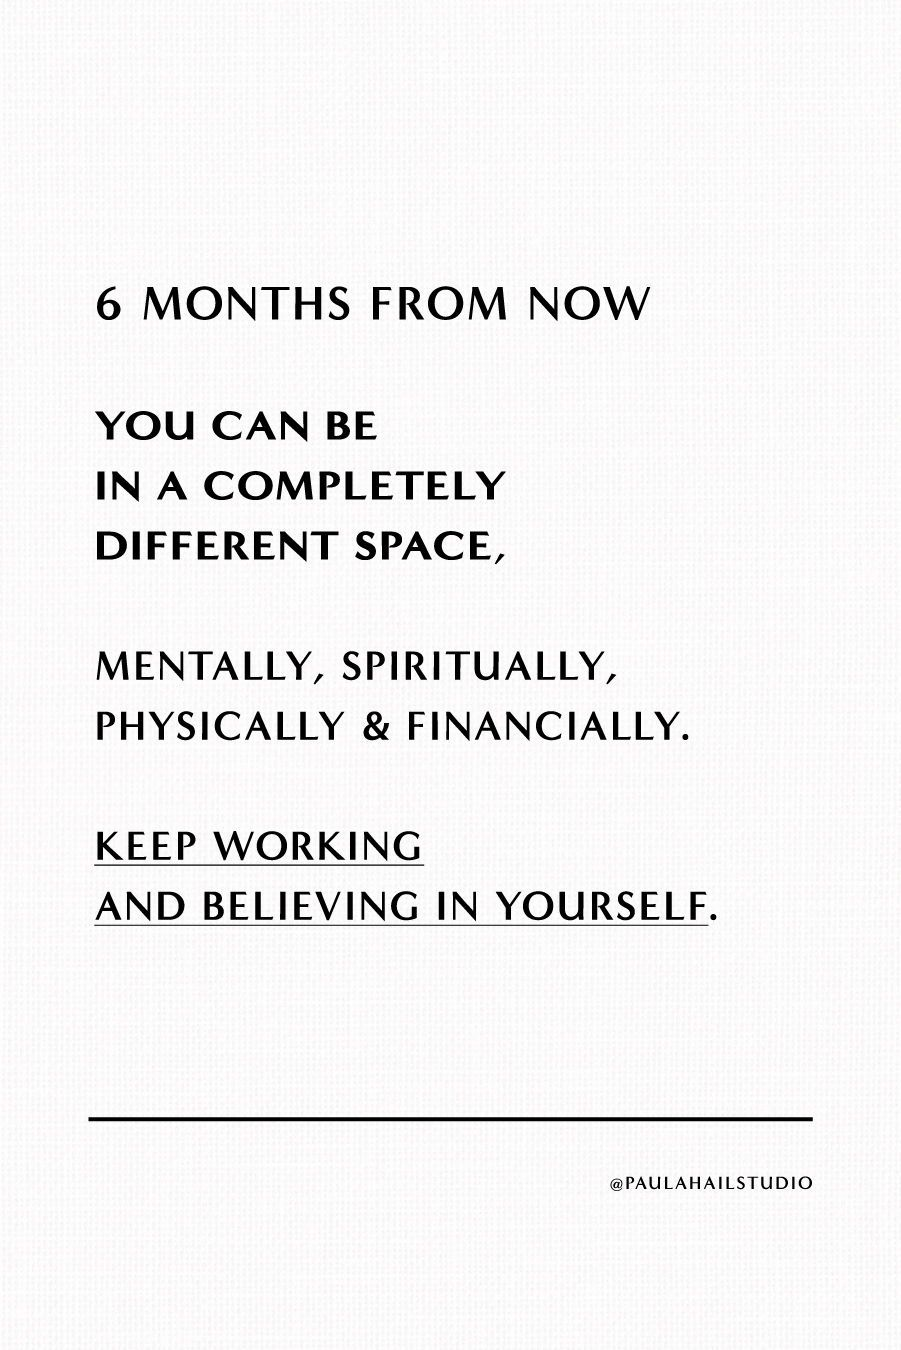 6 months from now You Can Be in a Completely Different Space - Paula Hail Studio - Brand & Website